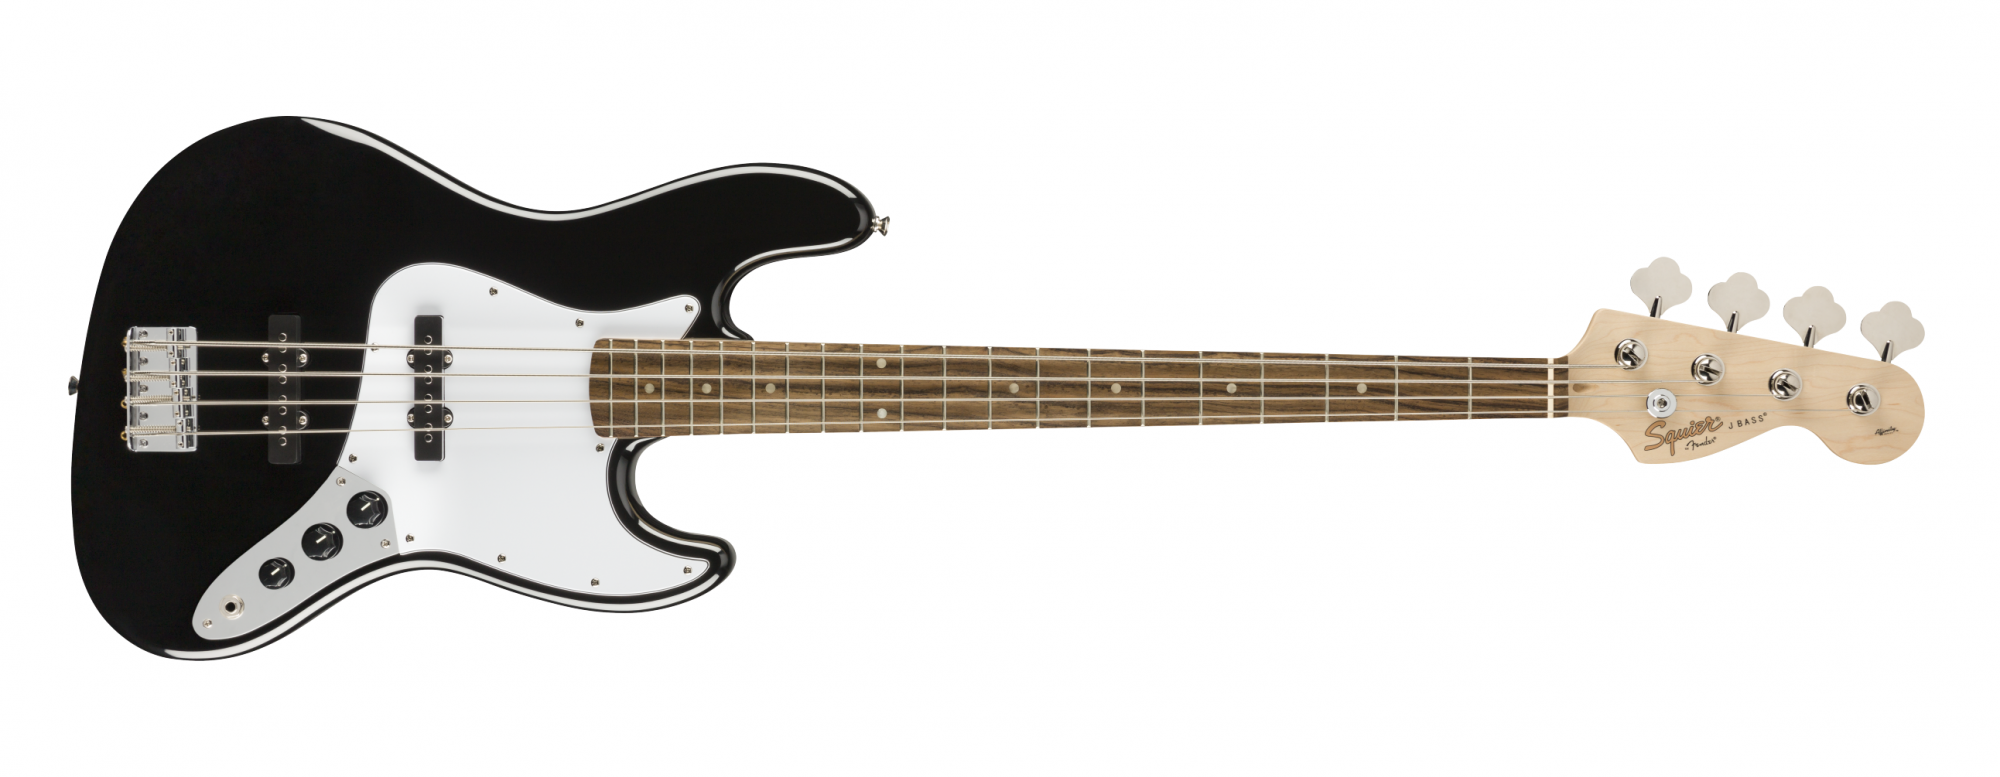 Fender Squier Affinity Jazz Bass, Laurel, Black